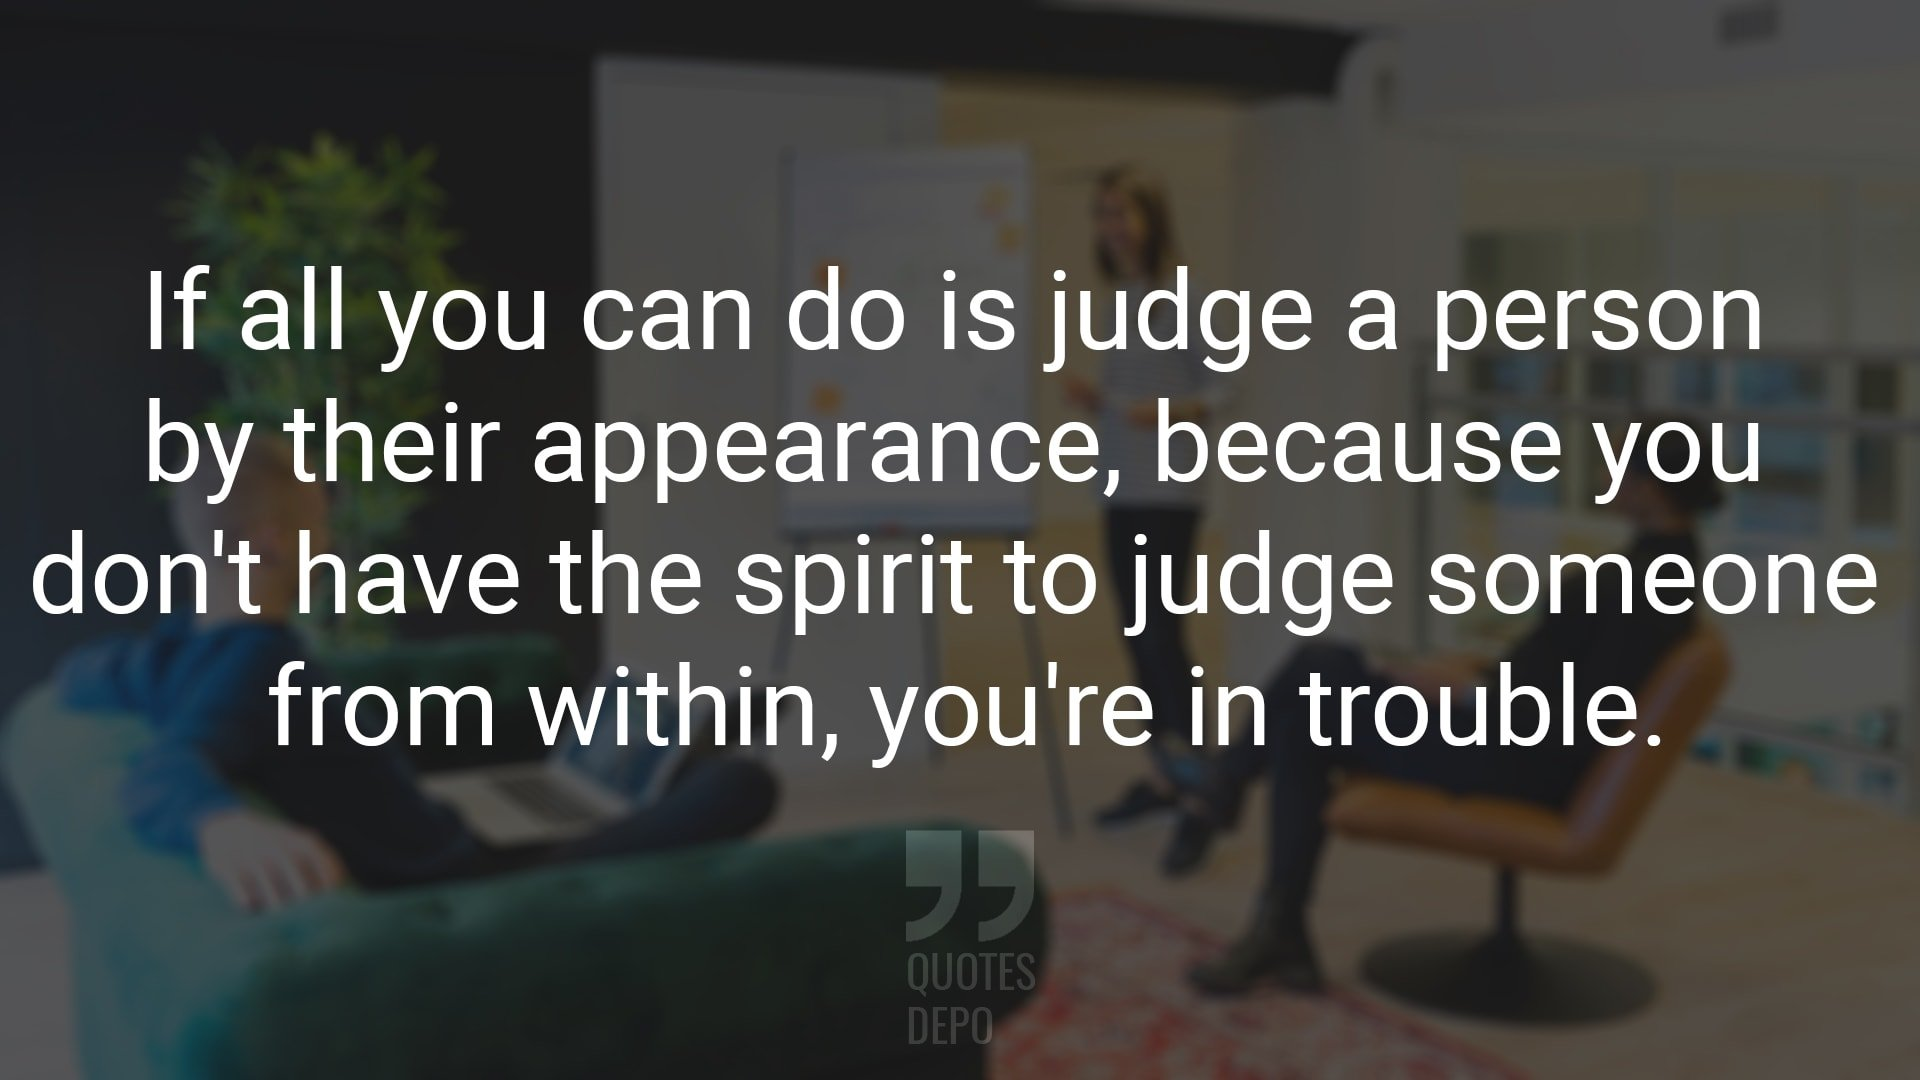 If All You Can Do is Judge a Person